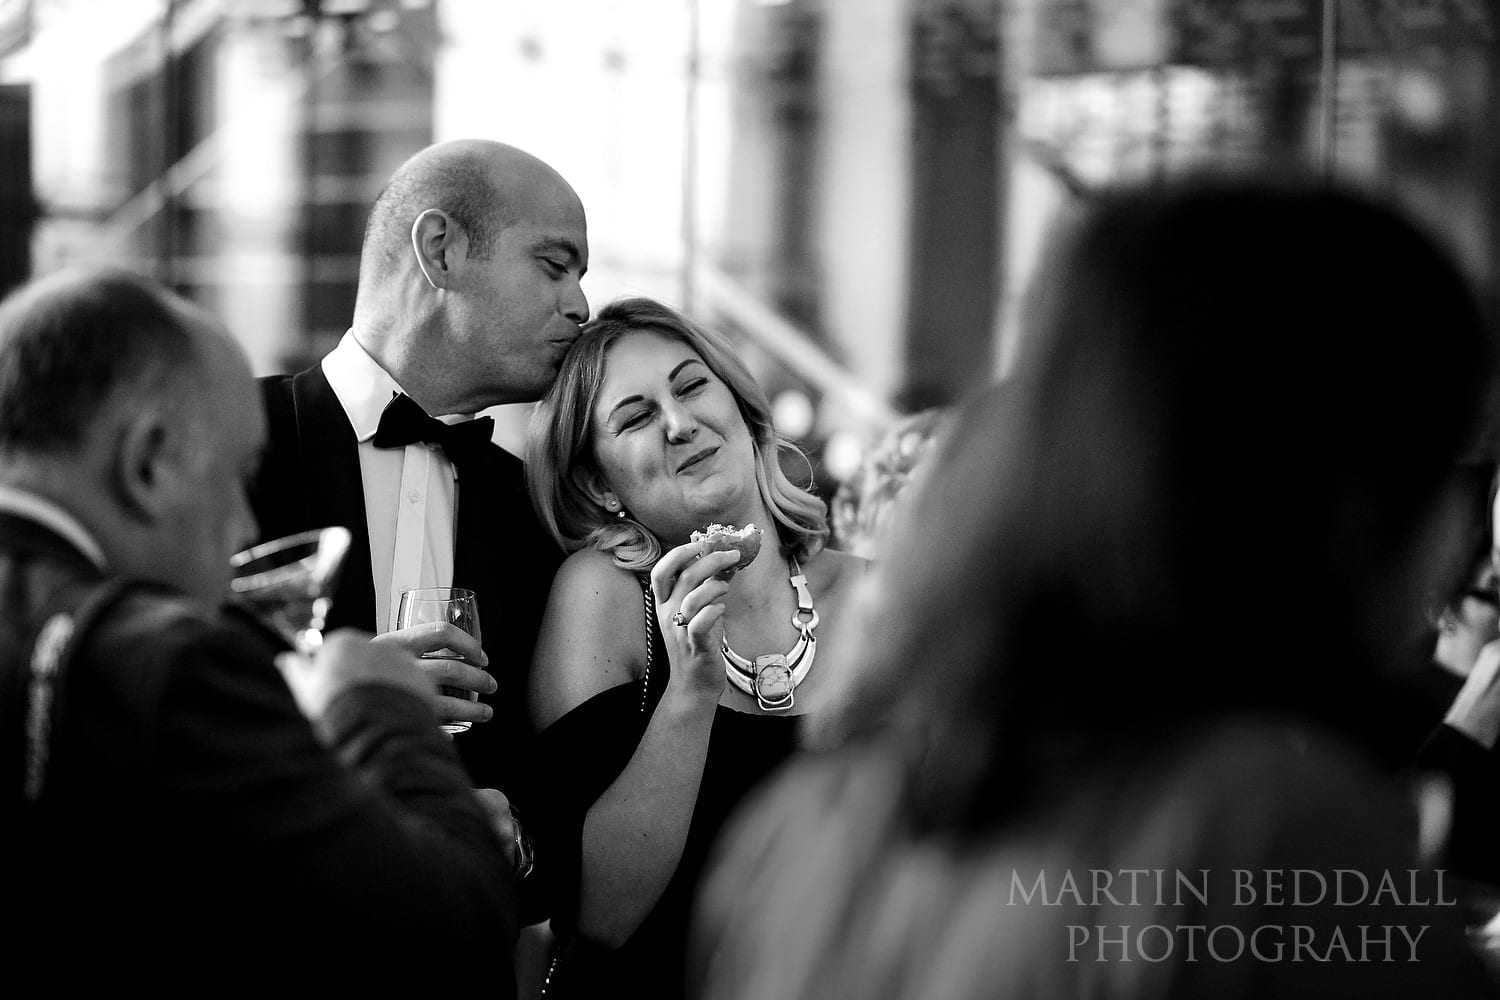 Wedding photography at the Town Hall Hotel